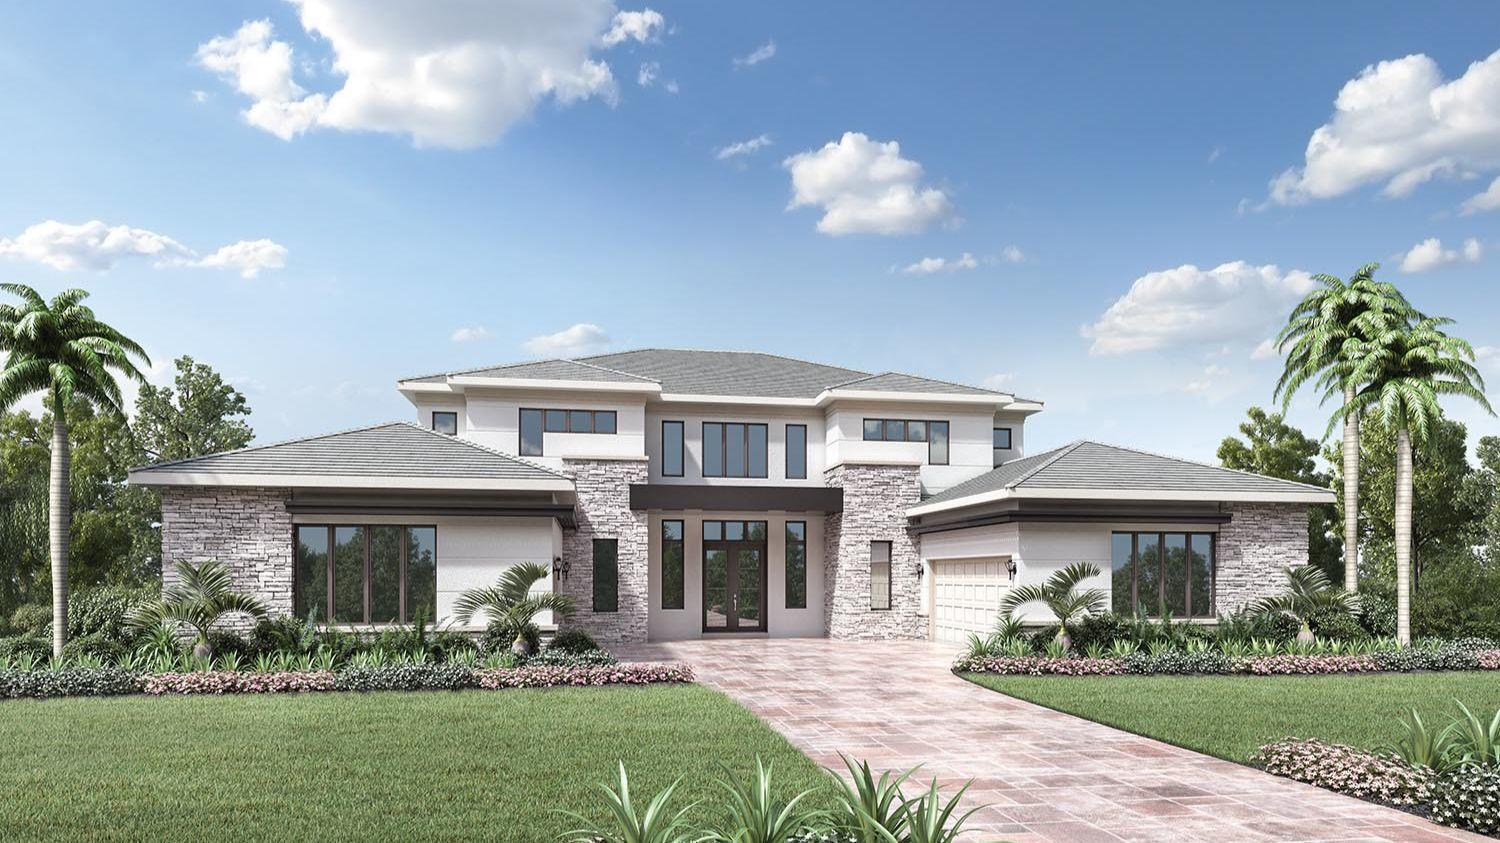 Boca Raton Shopping >> Prominent developer Toll Brothers bringing luxury single-home community to Southwest Ranches ...